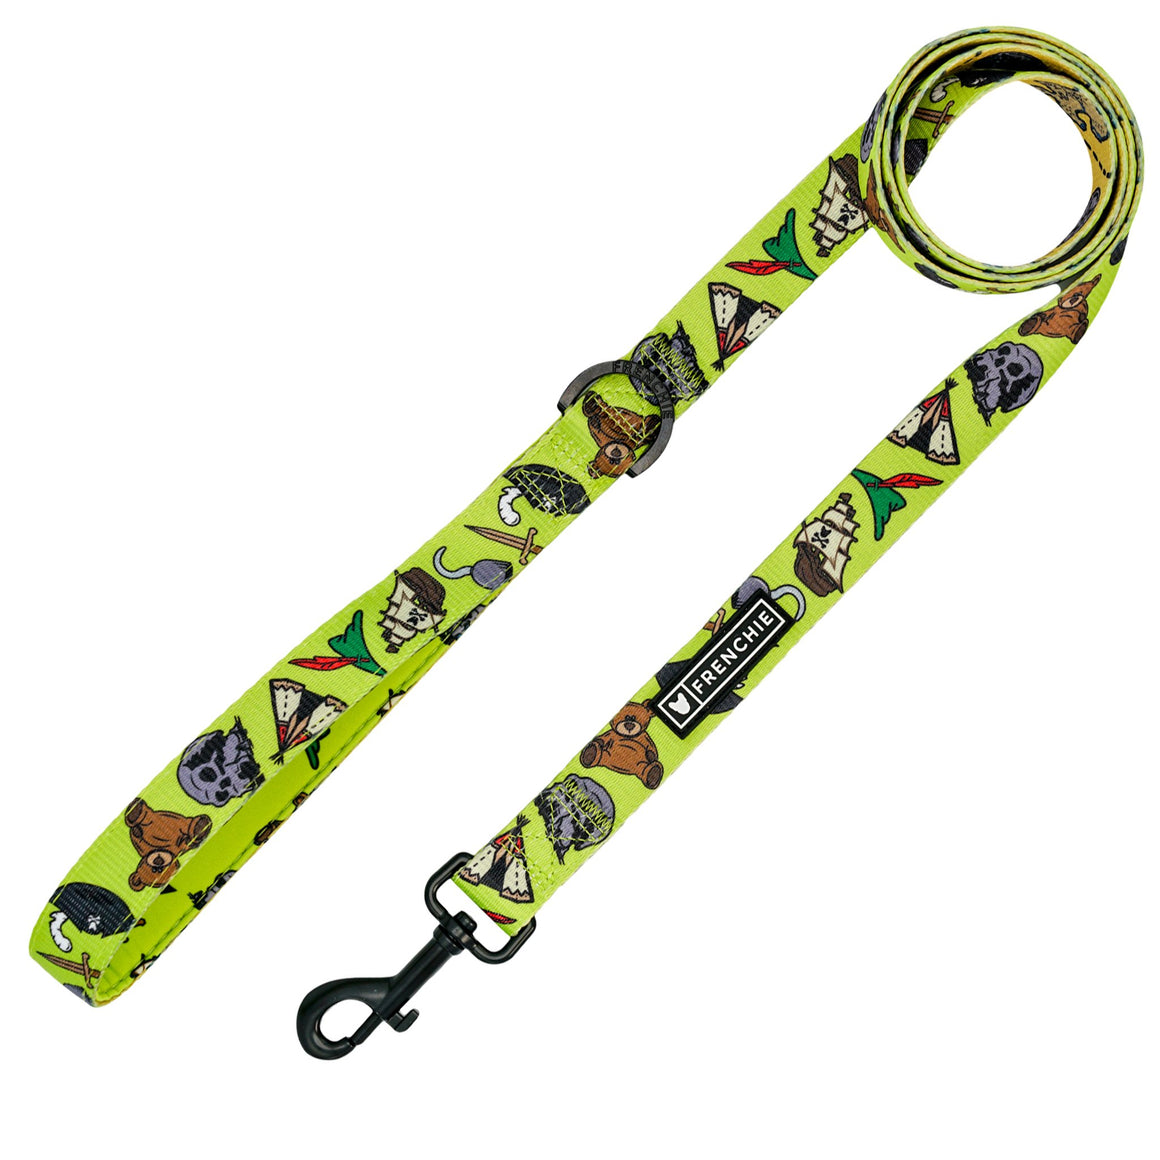 Frenchie Comfort Leash - Pirate's Cove - Frenchie Bulldog - Shop Harnesses for French Bulldogs - Shop French Bulldog Harness - Harnesses for Pugs